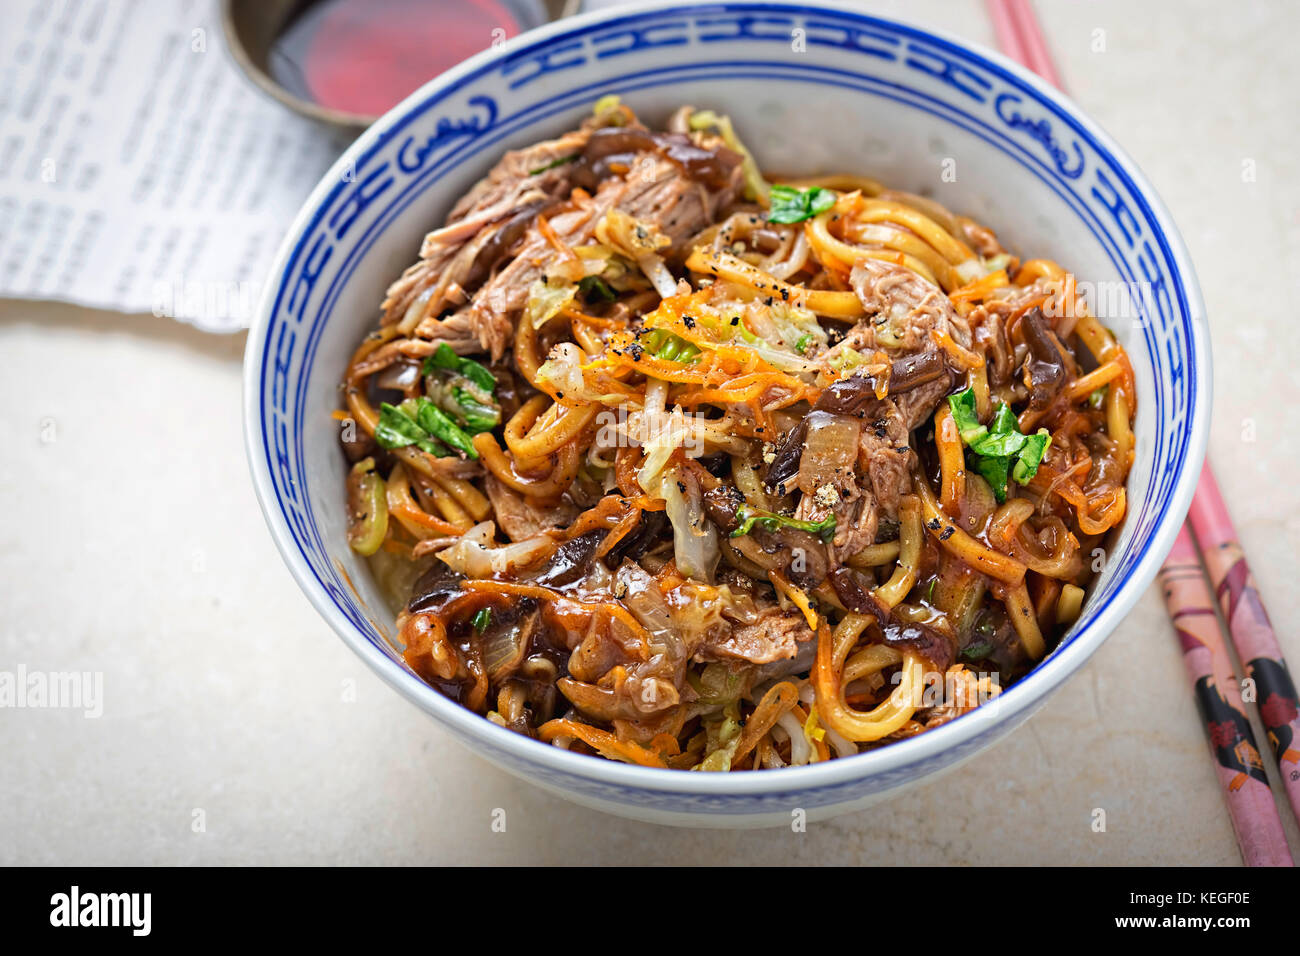 Hoisin duck noodles. Egg noodles with strips slow roasted duck in hoisin sauce with oak choi. - Stock Image